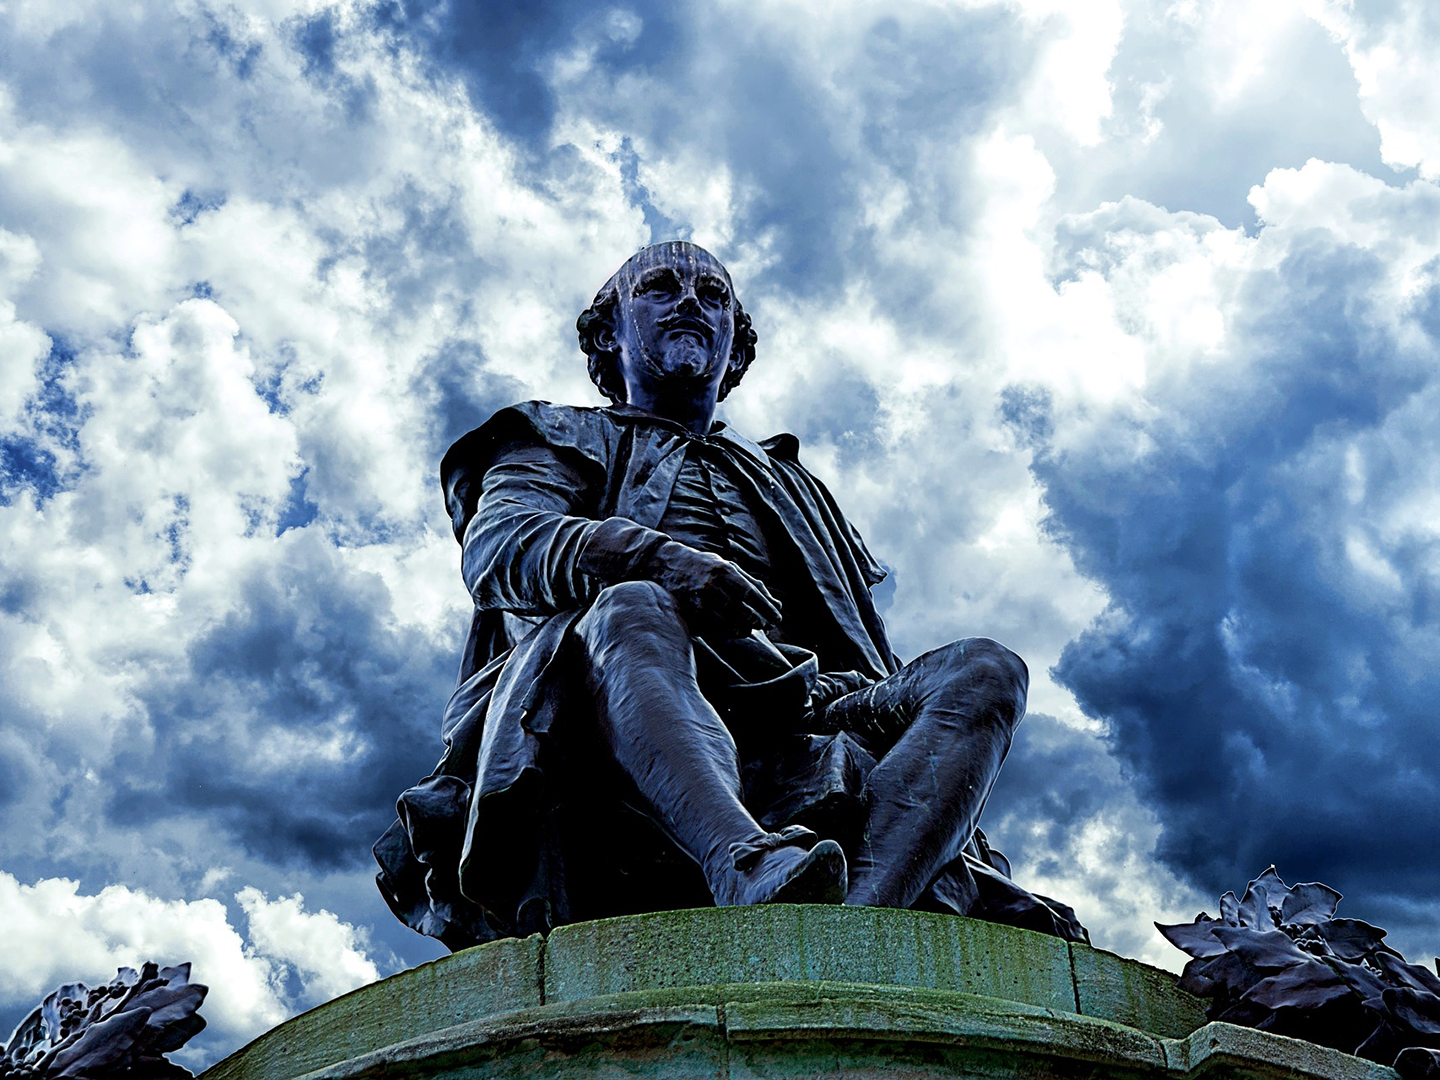 Shakespeare statue in front of a cloudy sky